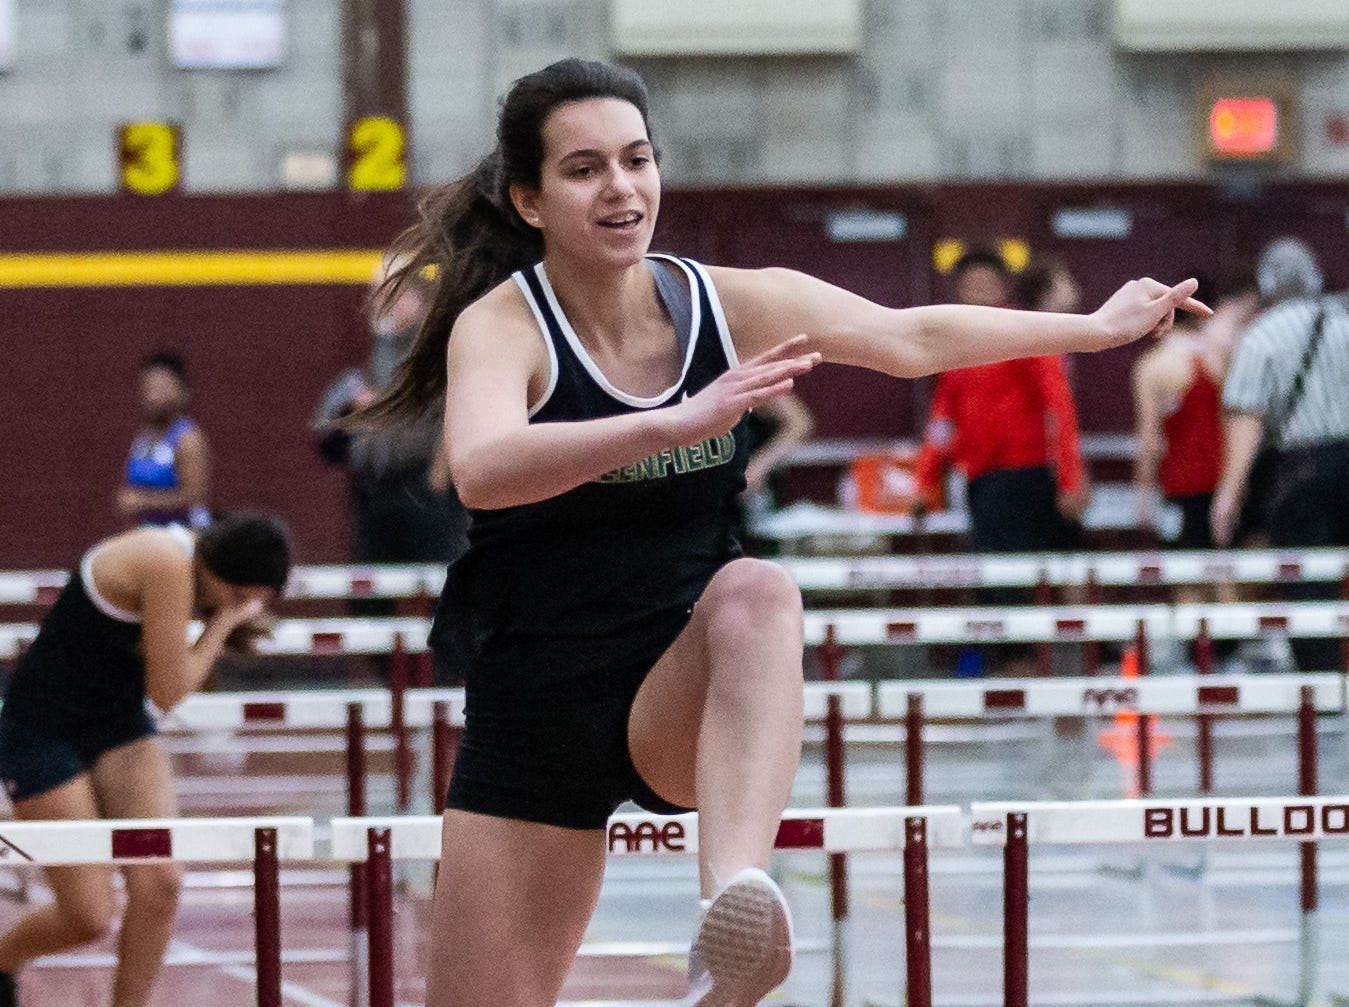 Greenfield's Amayiah Lang competes in the 55 meter low hurdles at the Reinhard Bulldog Relays hosted by West Allis Central on Friday, March 15, 2019.